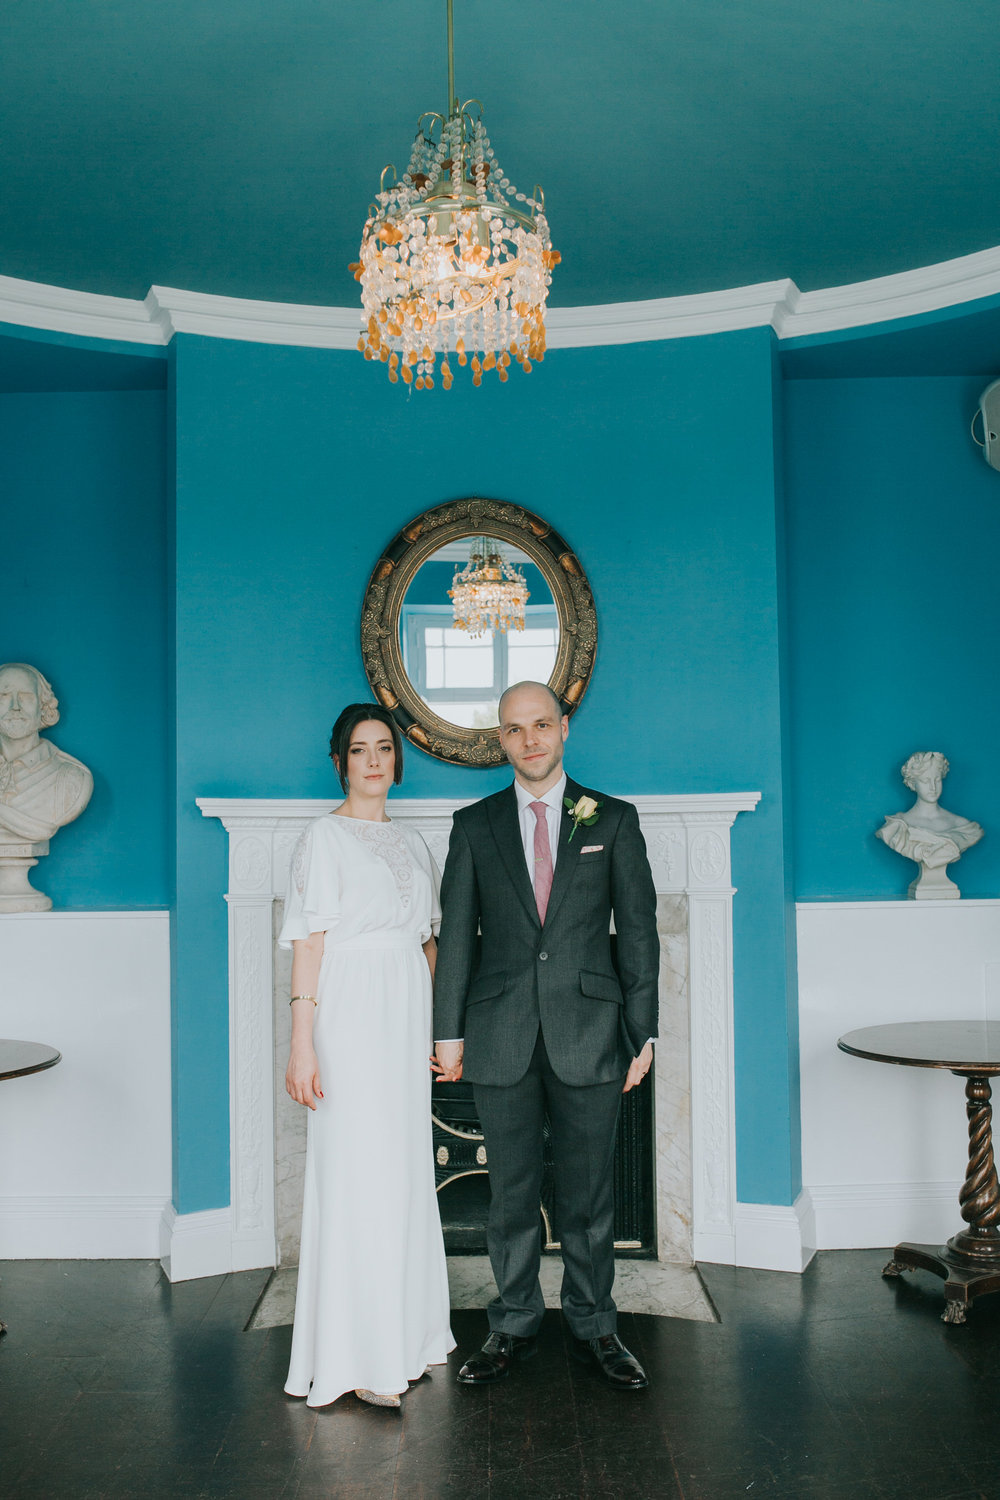 212 Belair House blue room wedding couple pose.jpg